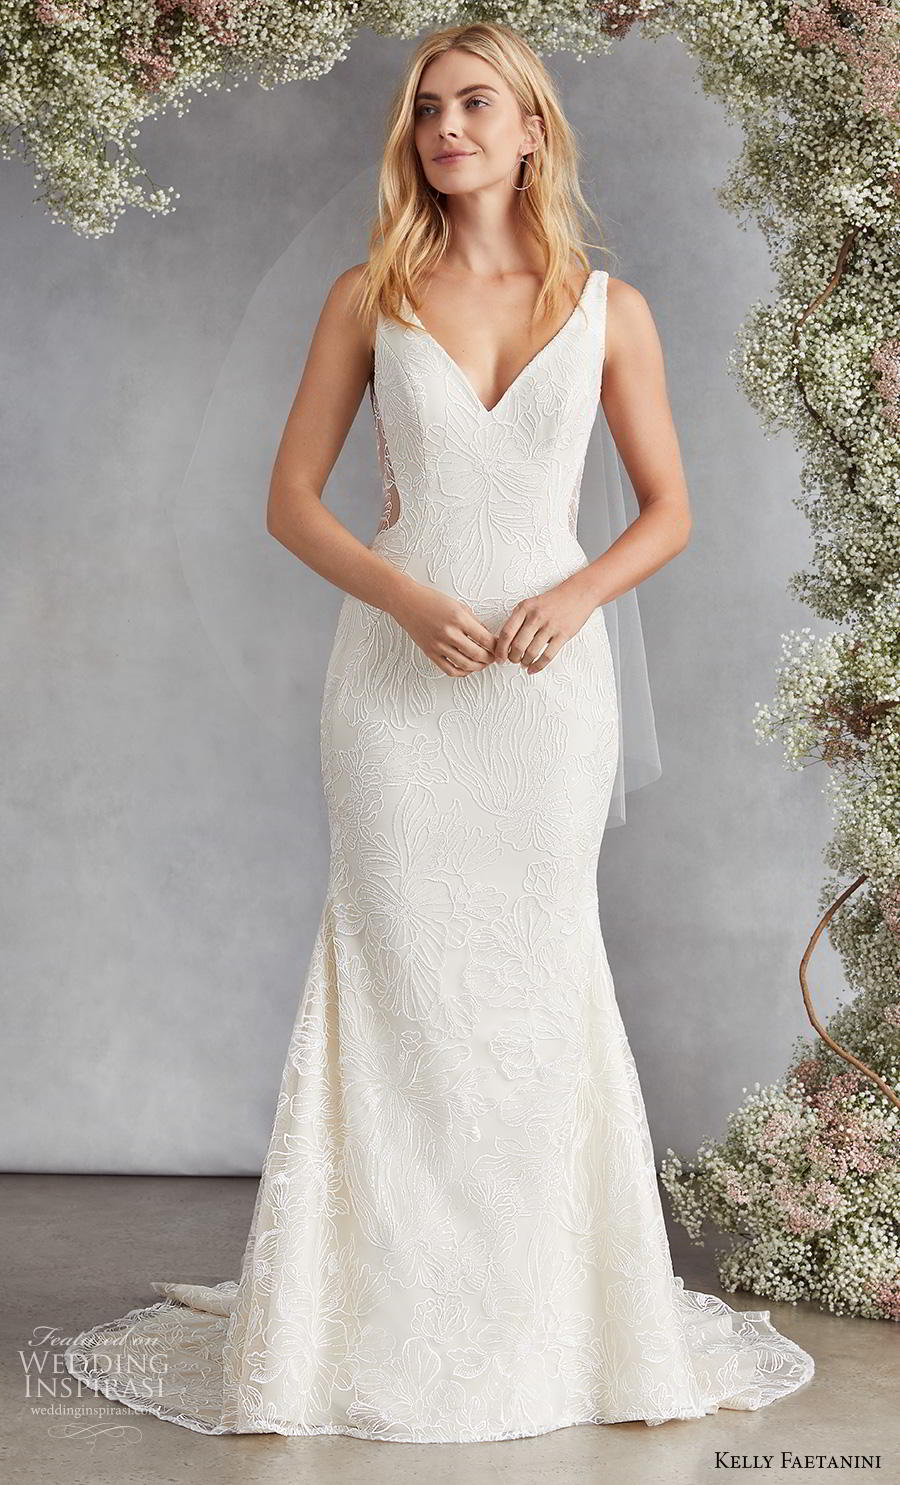 kelly faetanini fall 2020 bridal sleeveless v neck light embellishment elegant classic fit and flare wedding dress v back medium train (16) mv